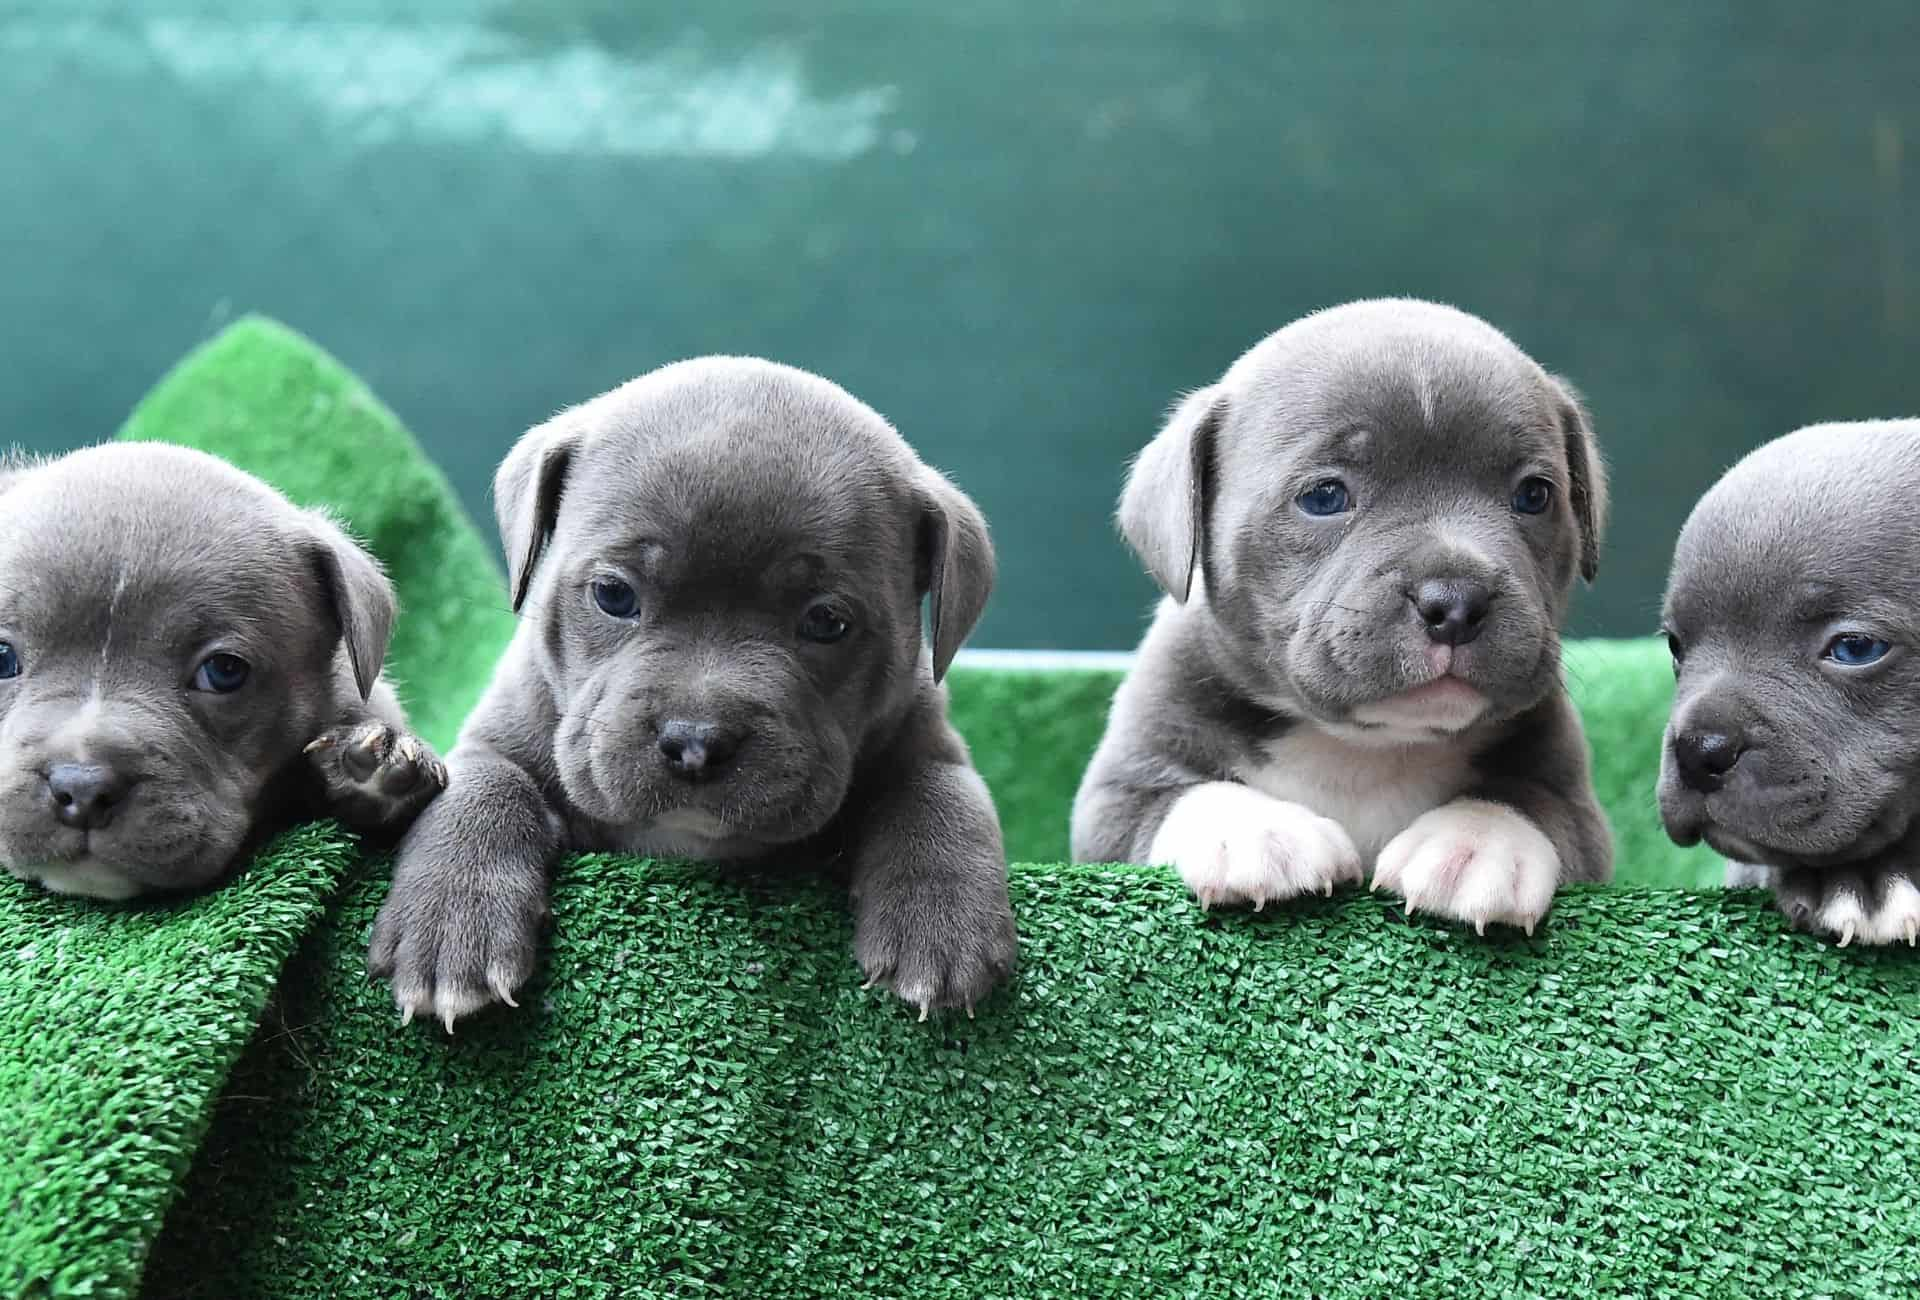 Four American Bully puppies with gray and white coats and blue puppy eyes.